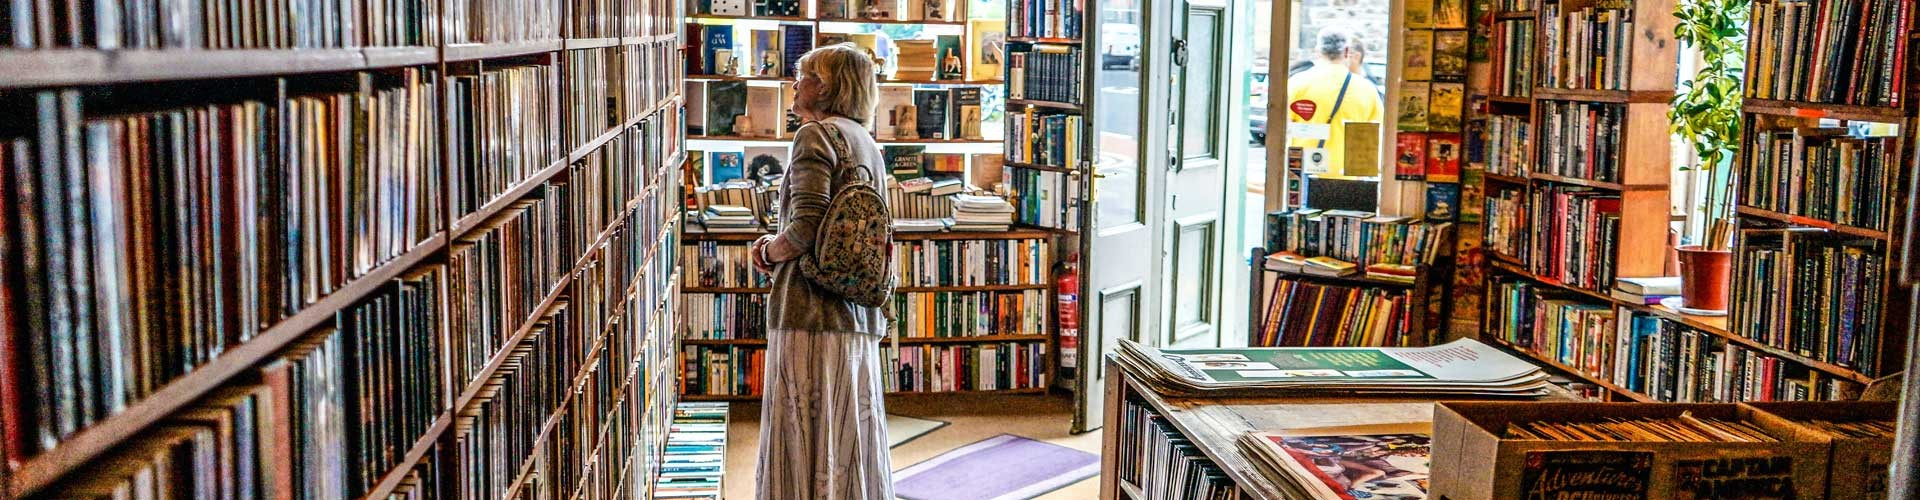 woman browsing shelves in book shop